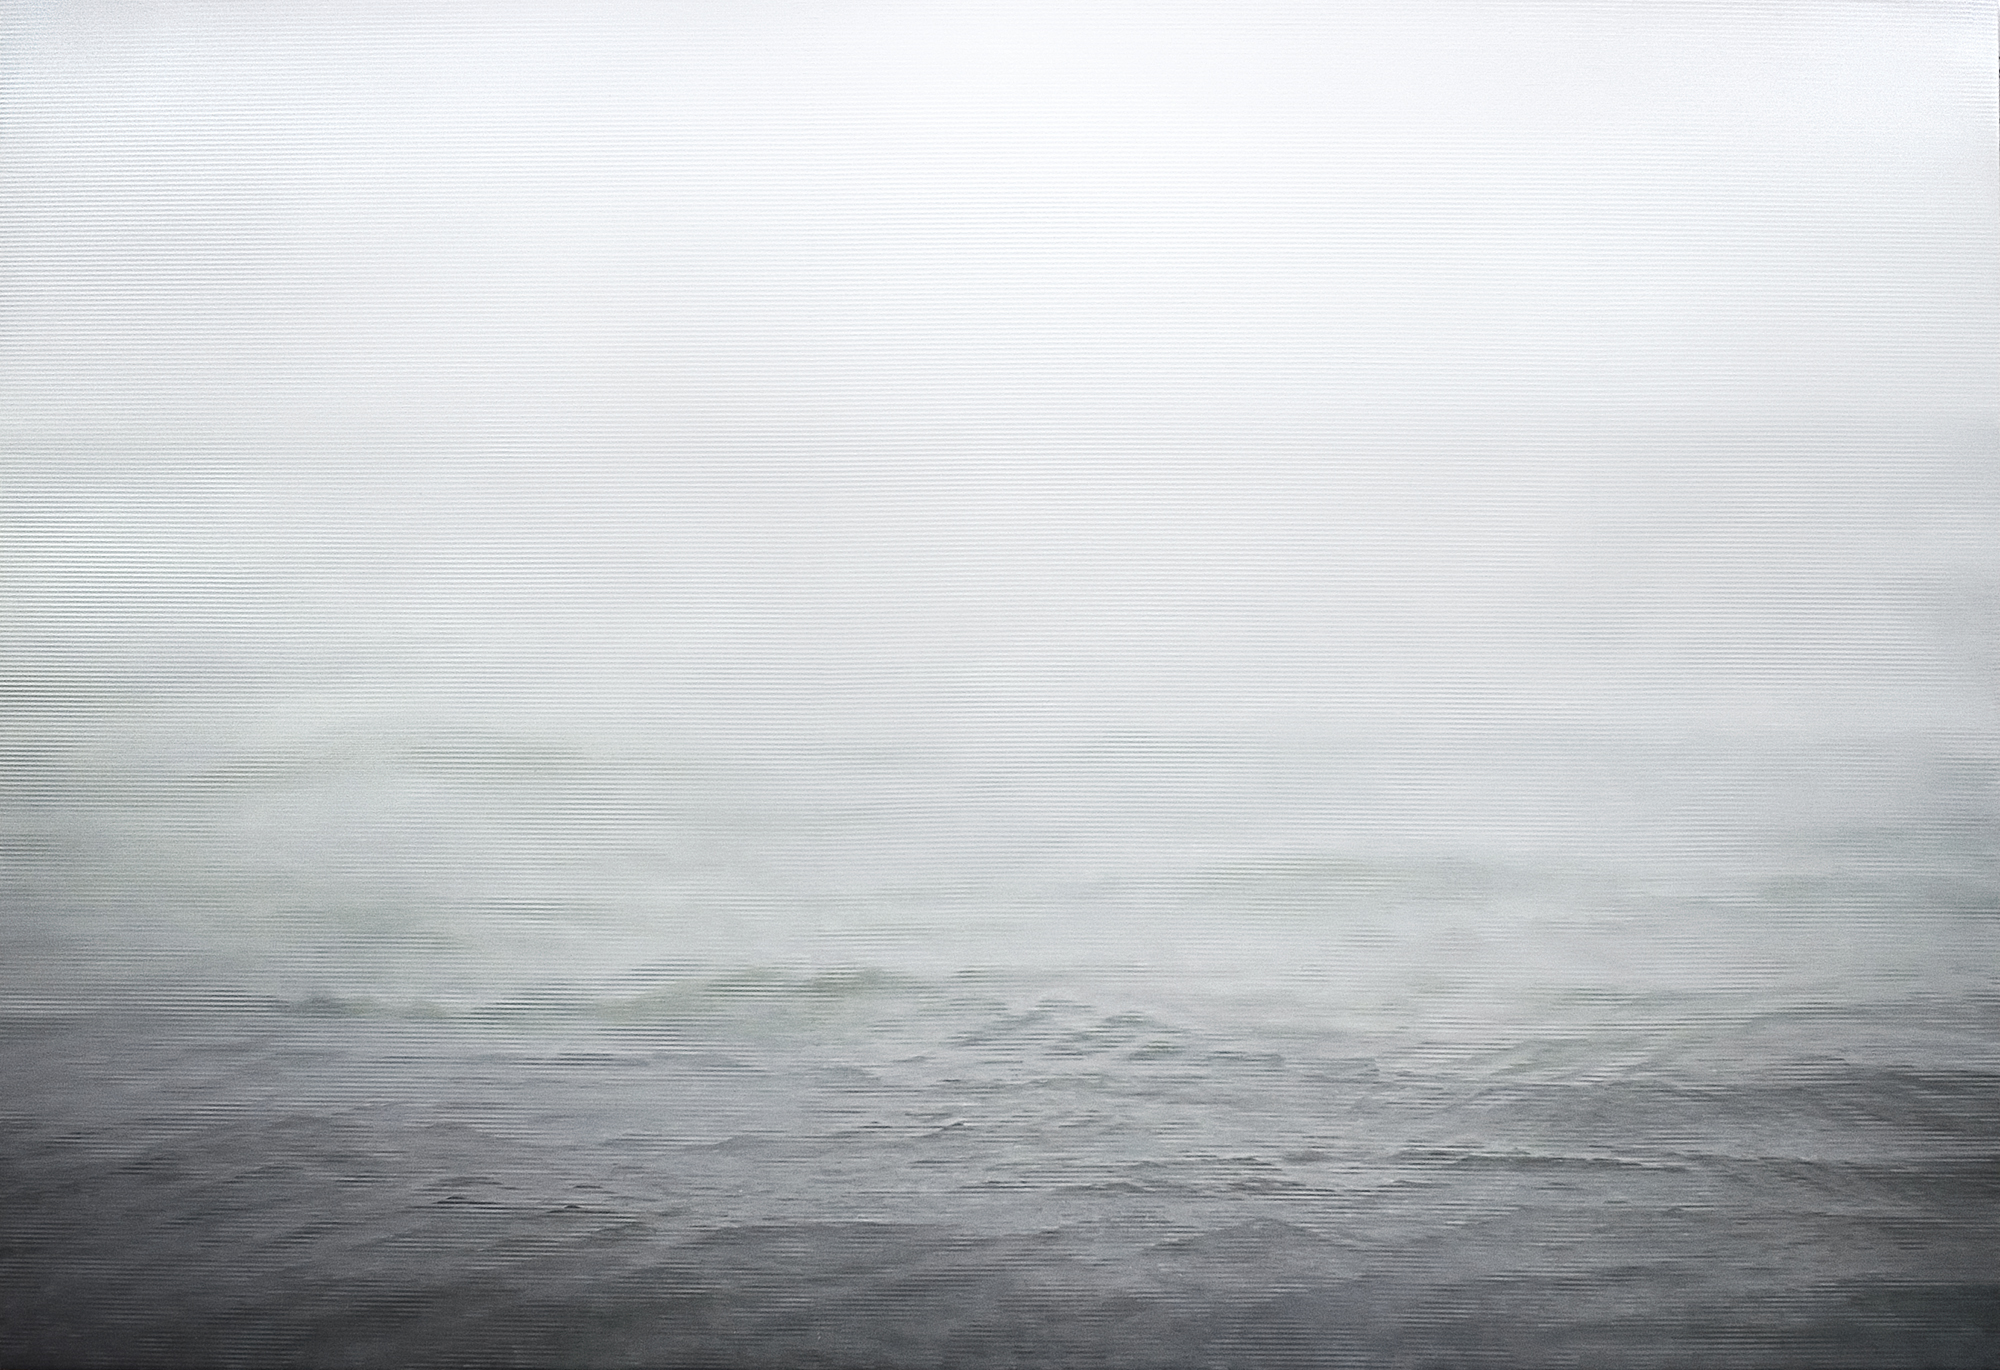 Caomin Xie,  Still Image 106 - Fog on the Ocean , 2005, oil on canvas, 65 by 96 inches